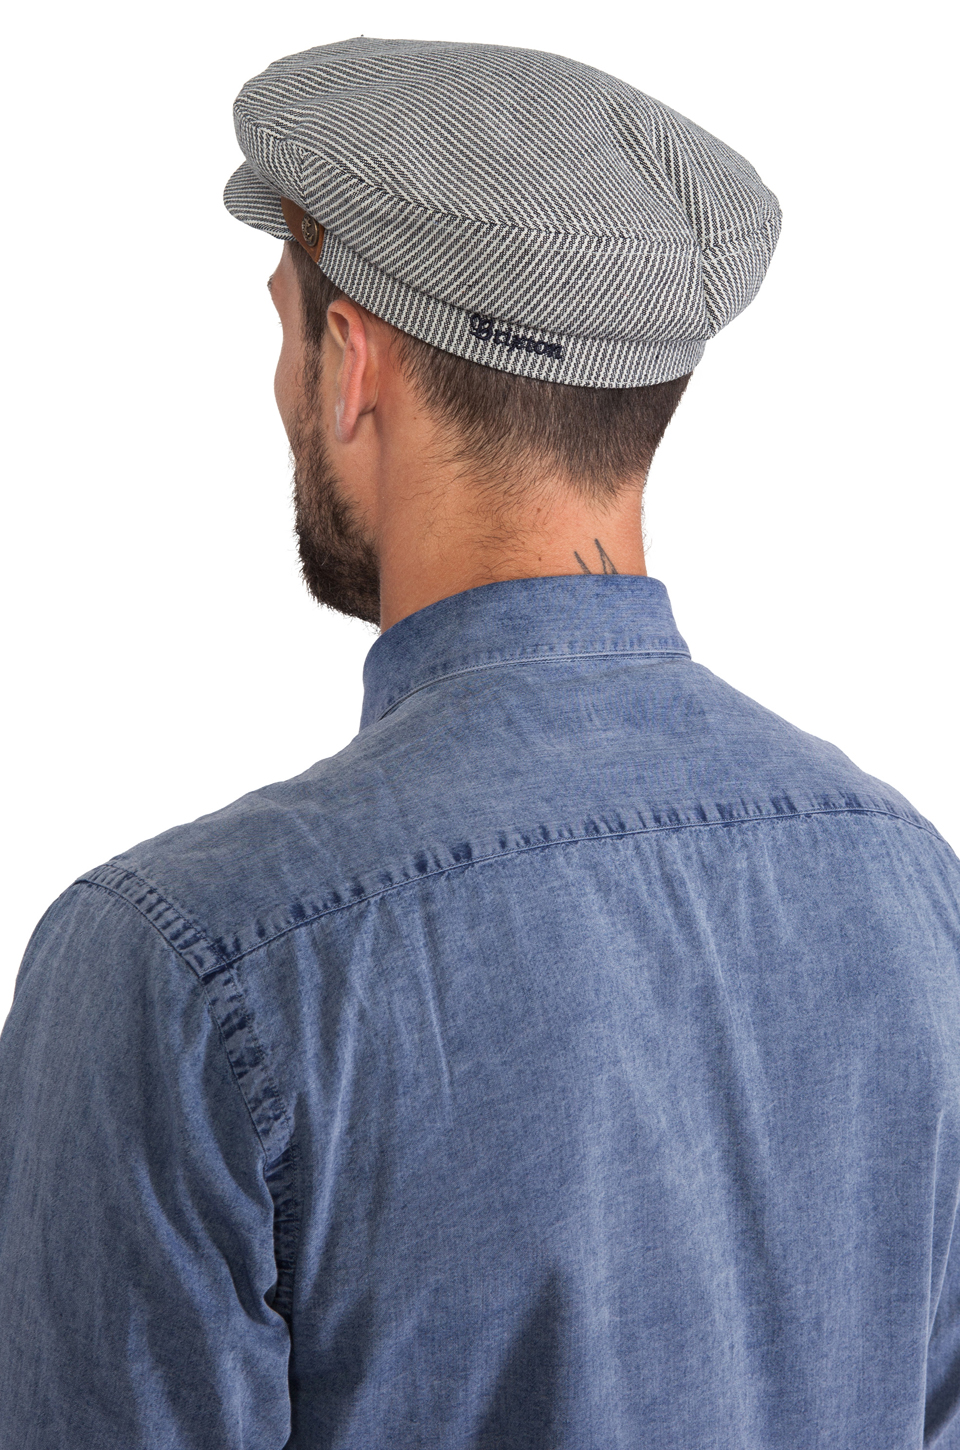 Brixton Fiddler Cap in Navy & White